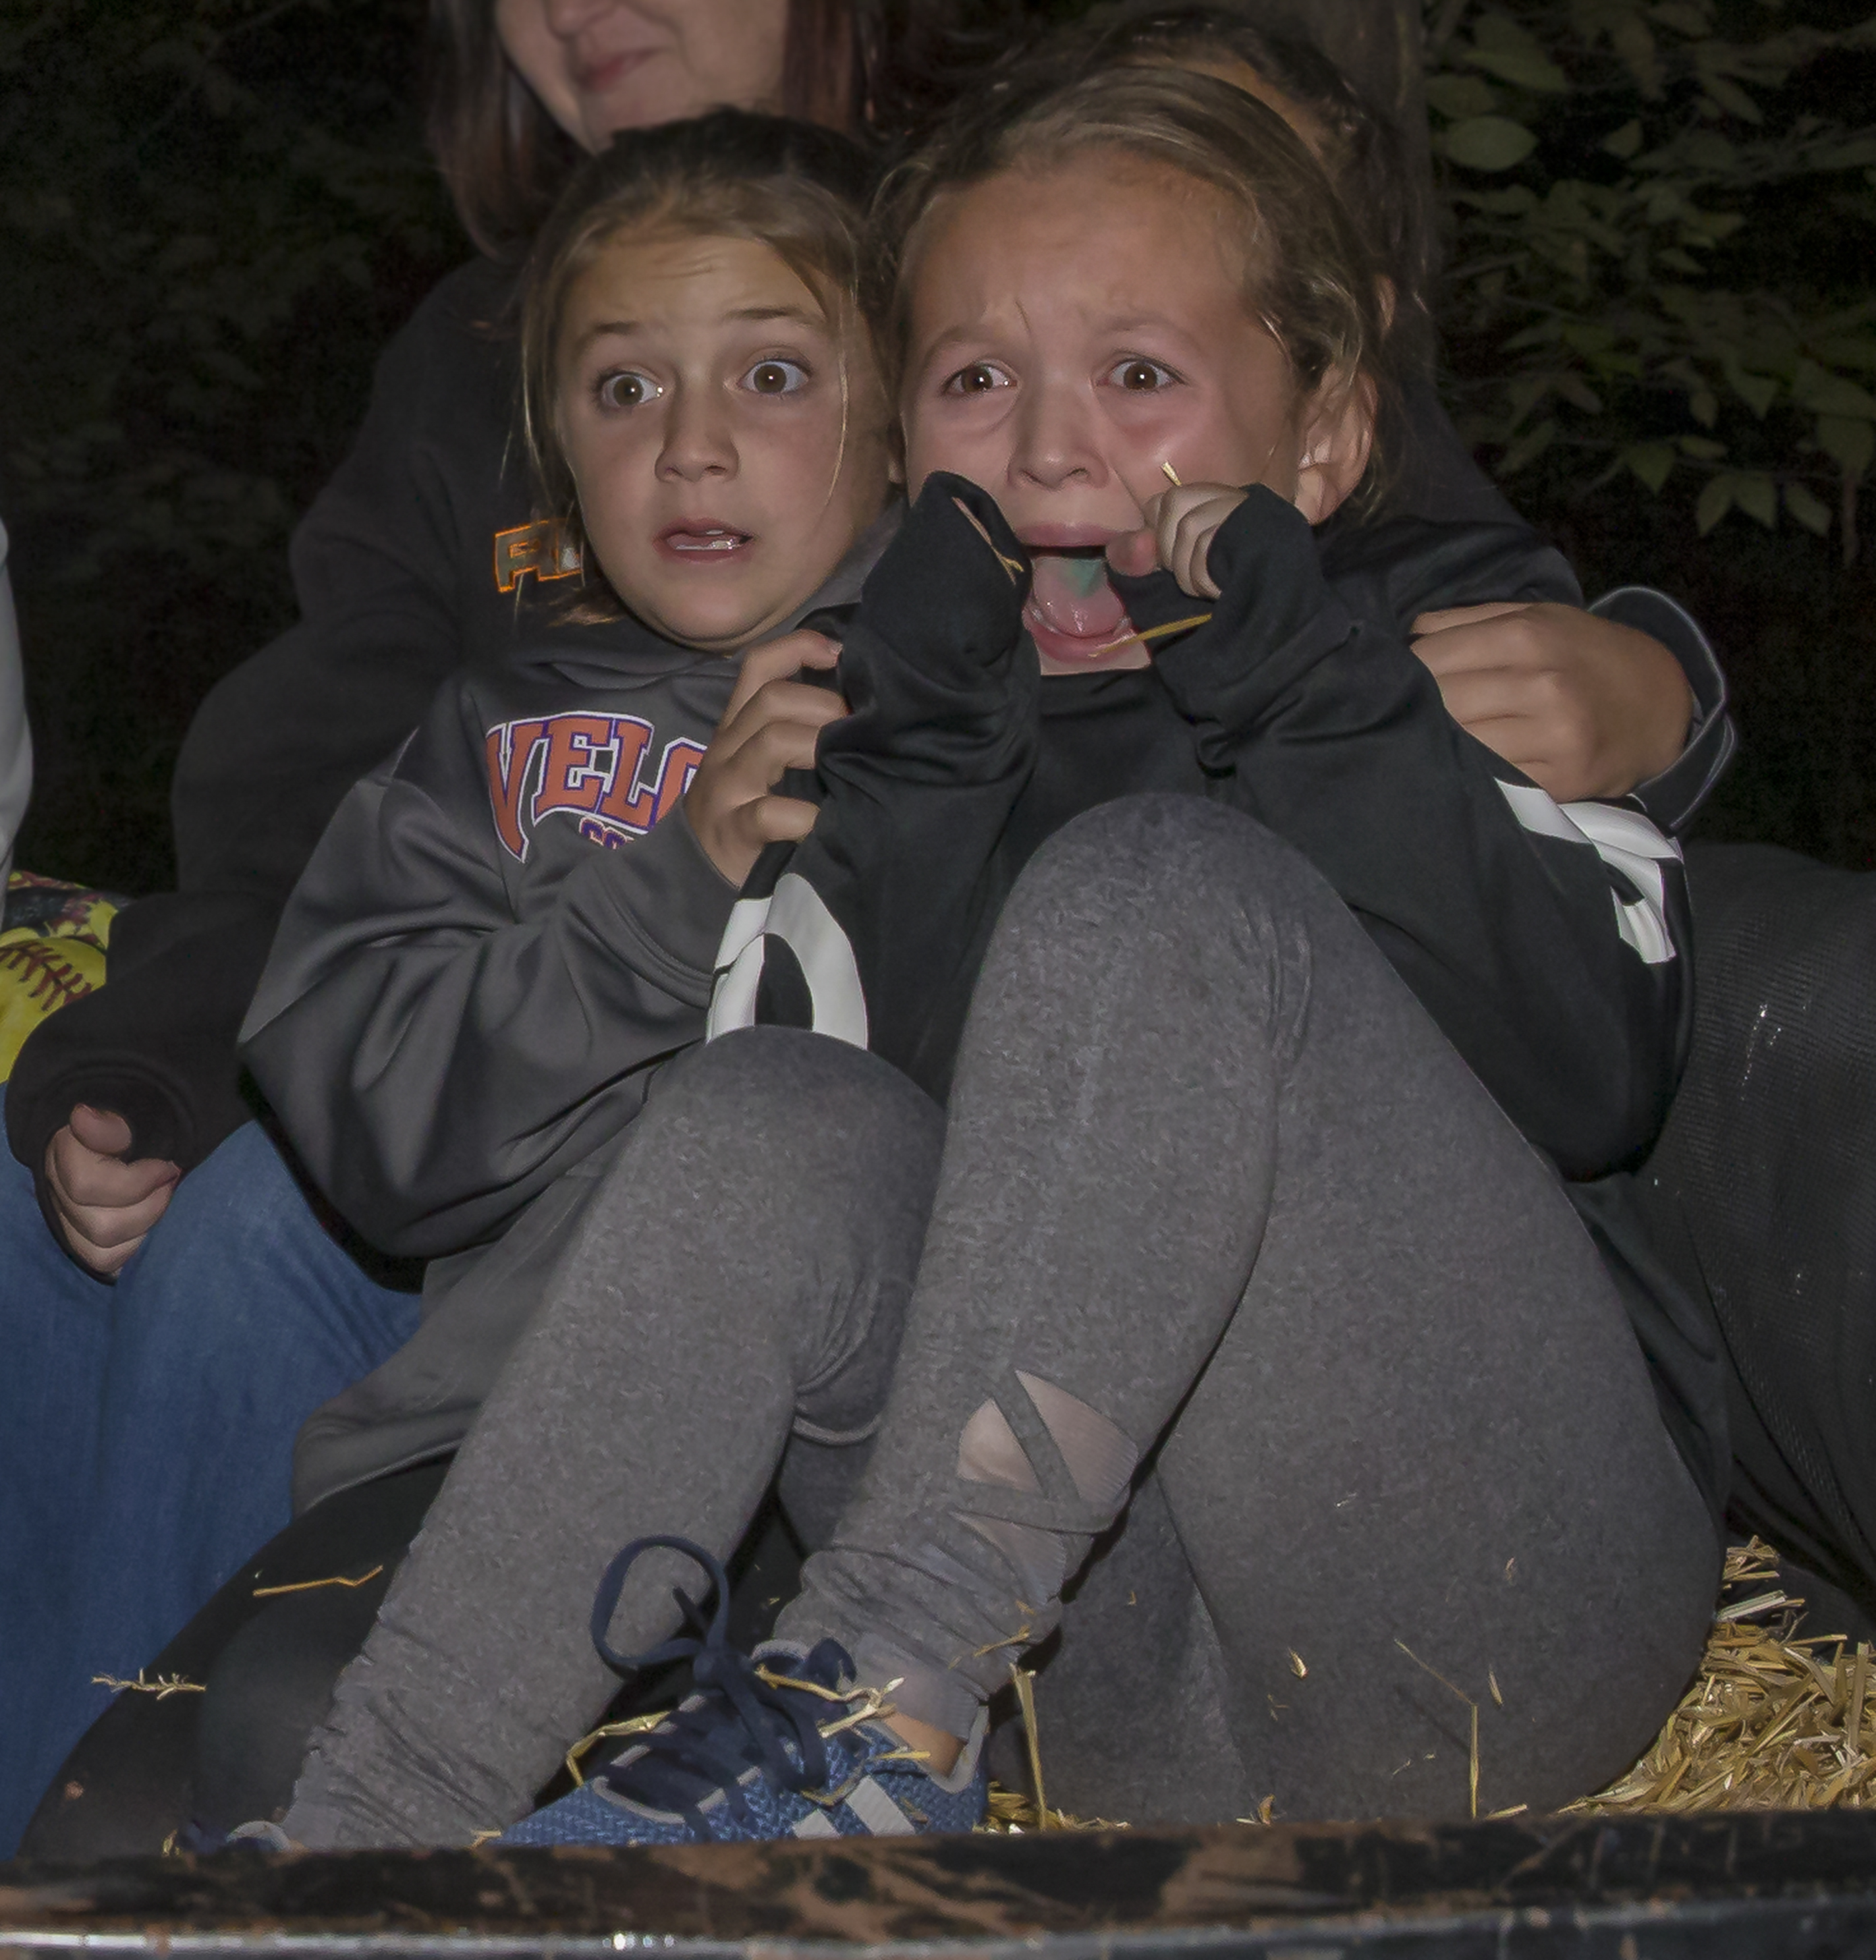 PICTURES: Barfield Bash was a great success this past weekend